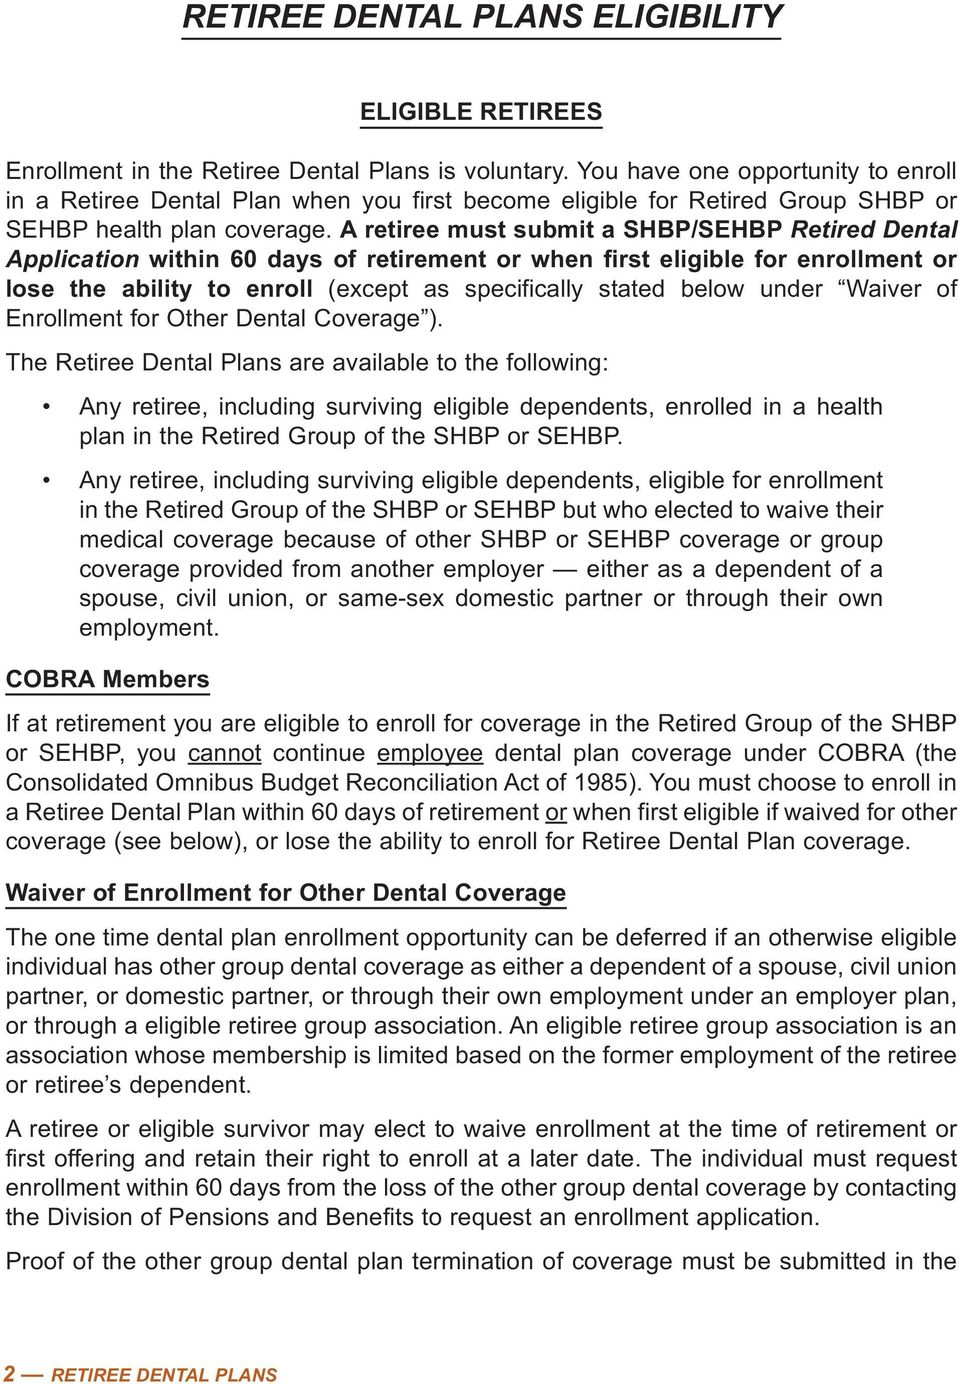 A retiree must submit a SHBP/SEHBP Retired Dental Application within 60 days of retirement or when first eligible for enrollment or lose the ability to enroll (except as specifically stated below